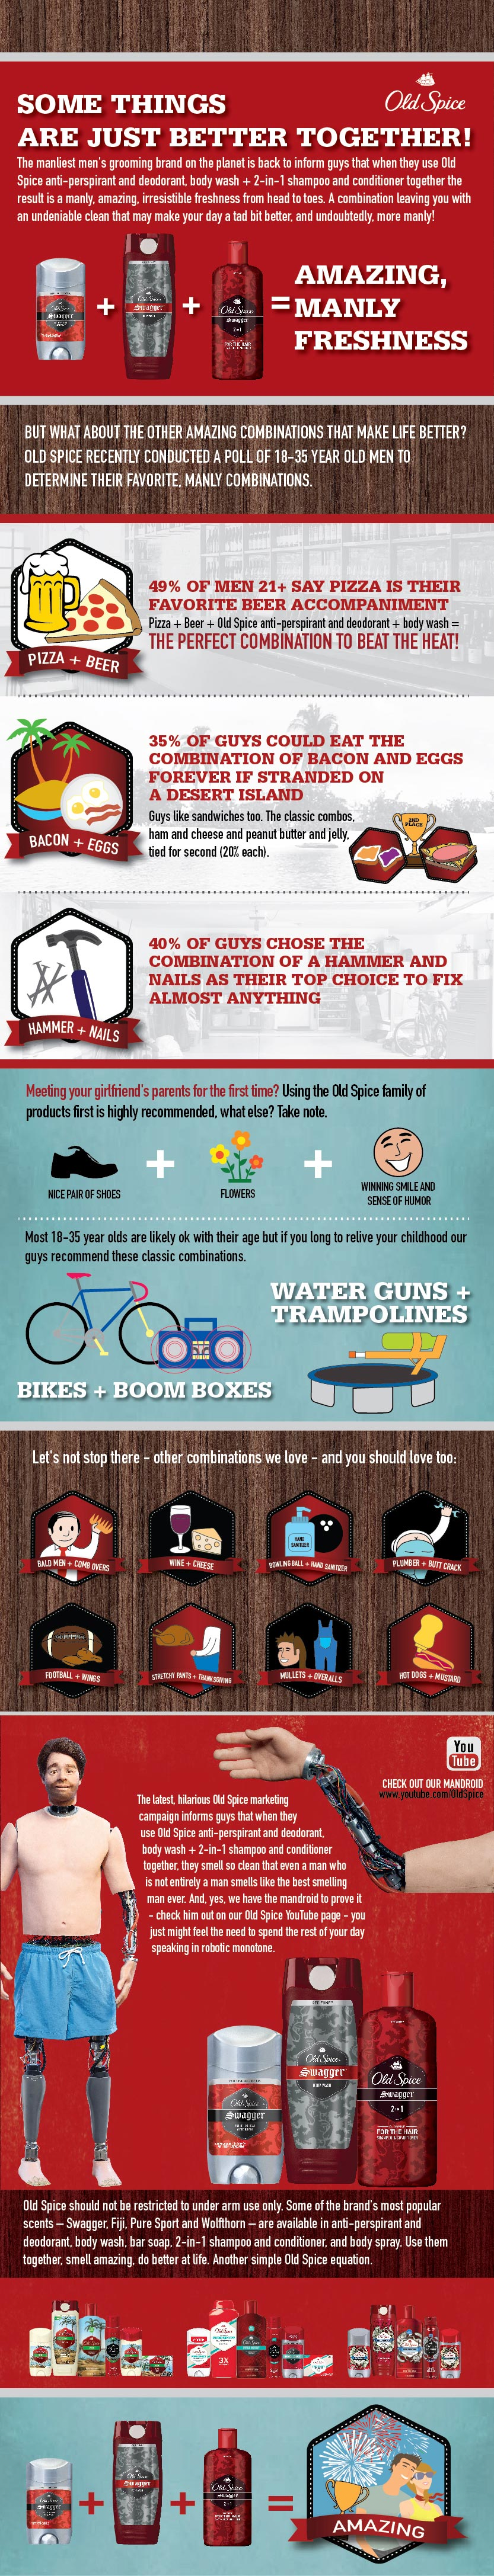 OldSpice_Infographic_FINAL2